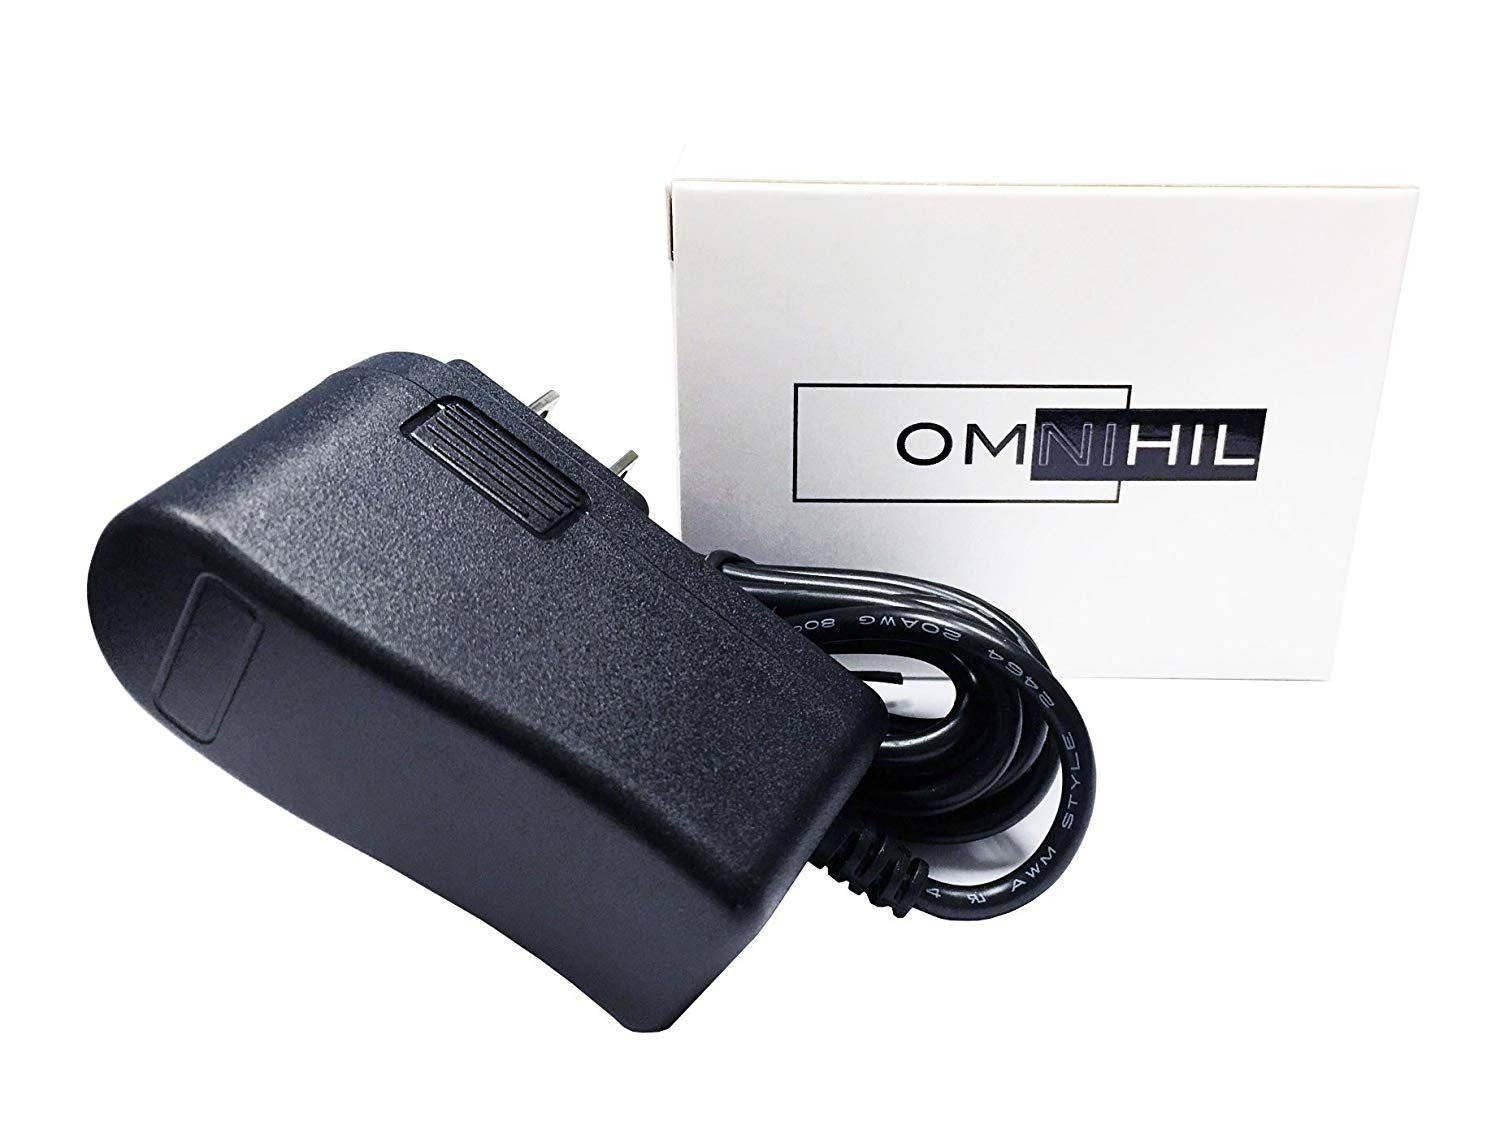 [UL Listed] Omnihil 8 Feet Power Adapter Compatible with Dynex VHS Video VCR Tape Rewinder DX-VR101